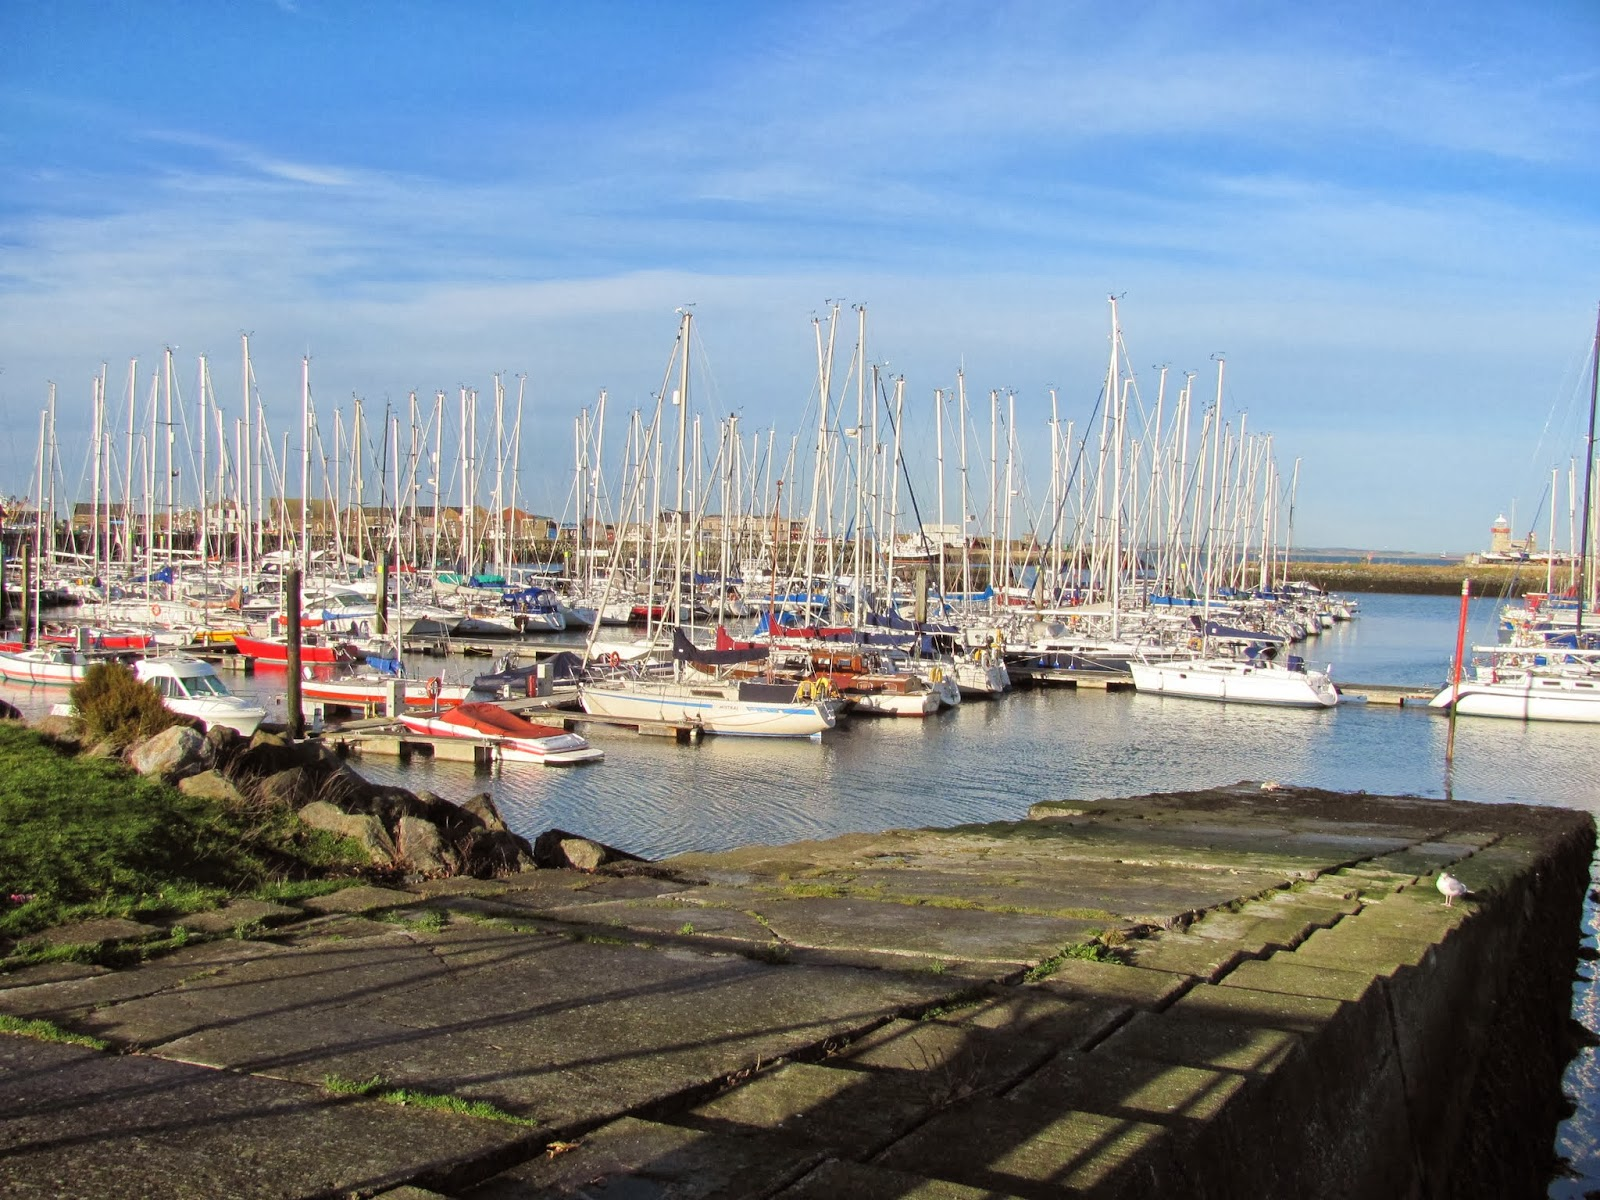 Sailboats in Howth Harbor Co. Dublin